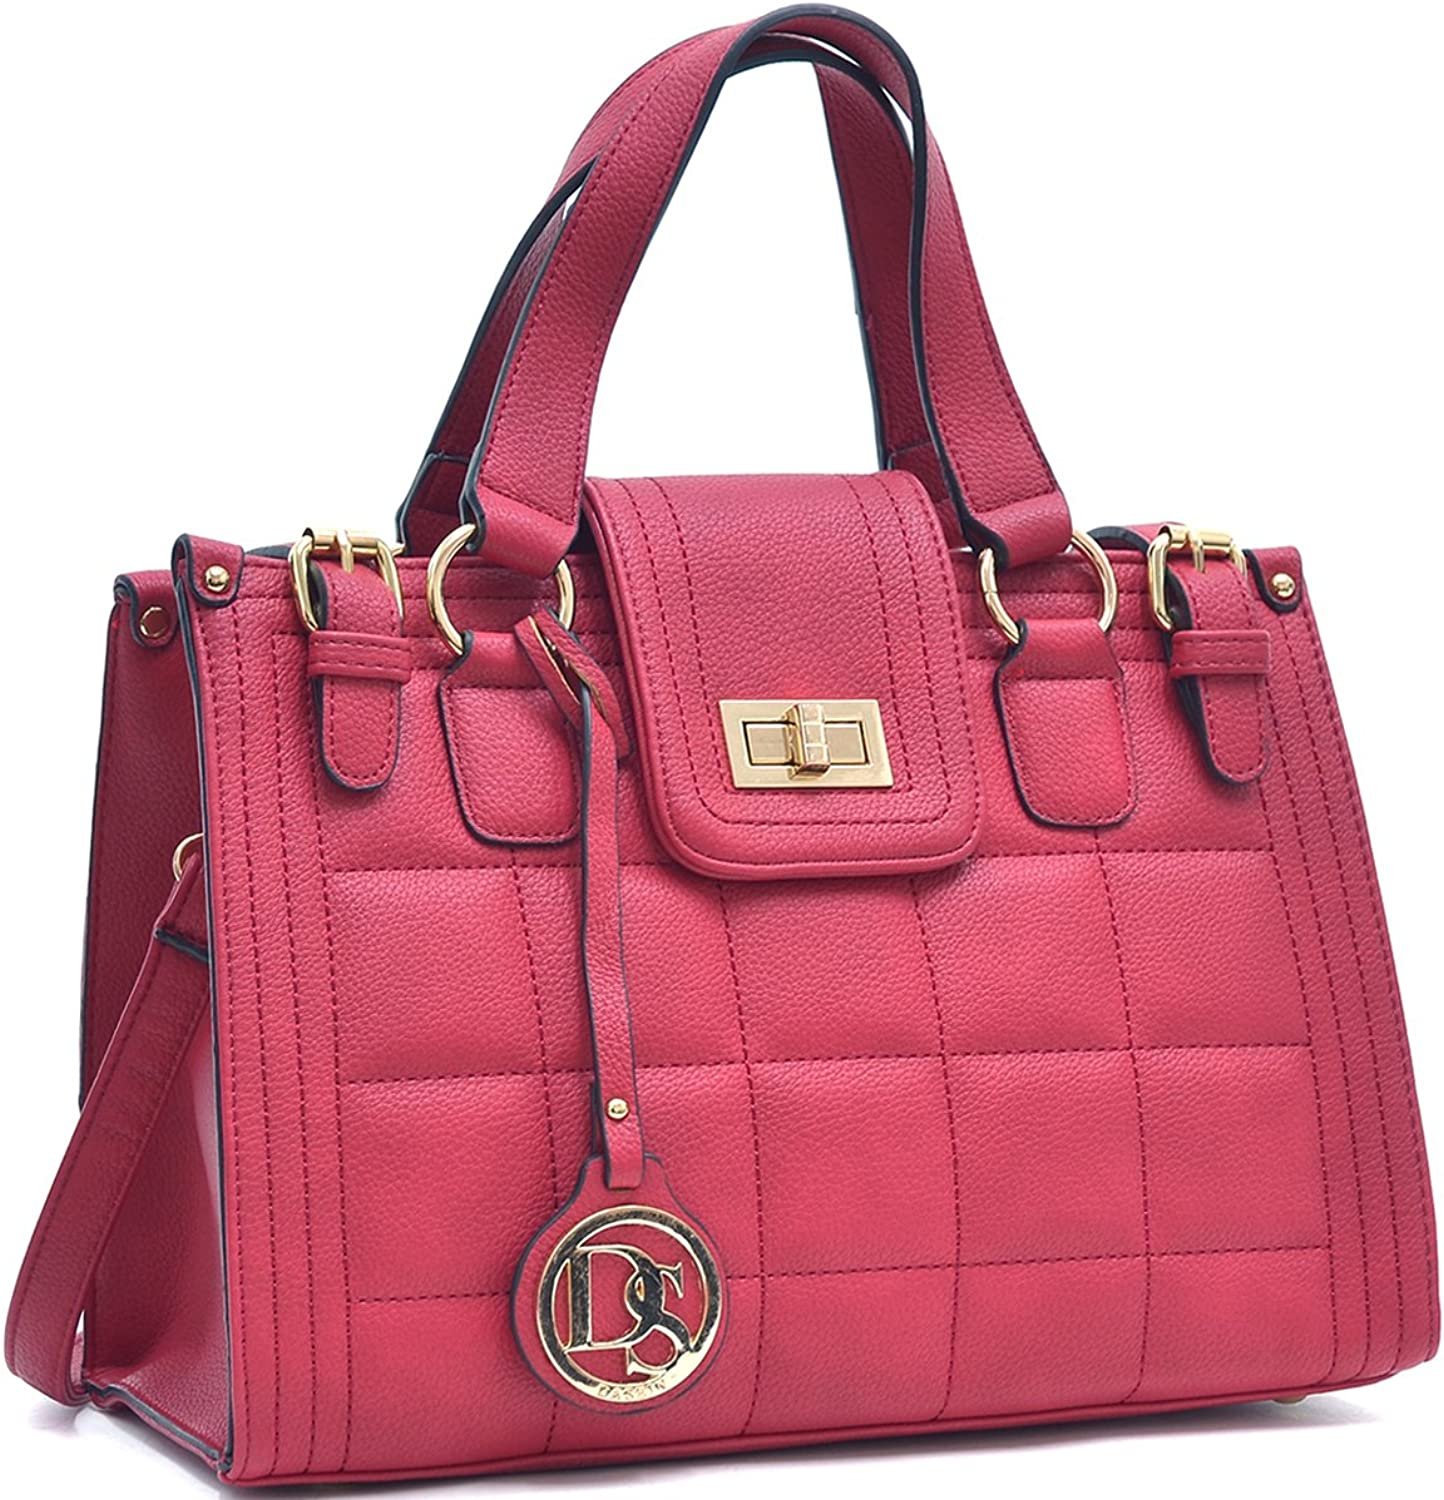 Dasein Quilted Satchel Shoulder Bag with Buckled Details